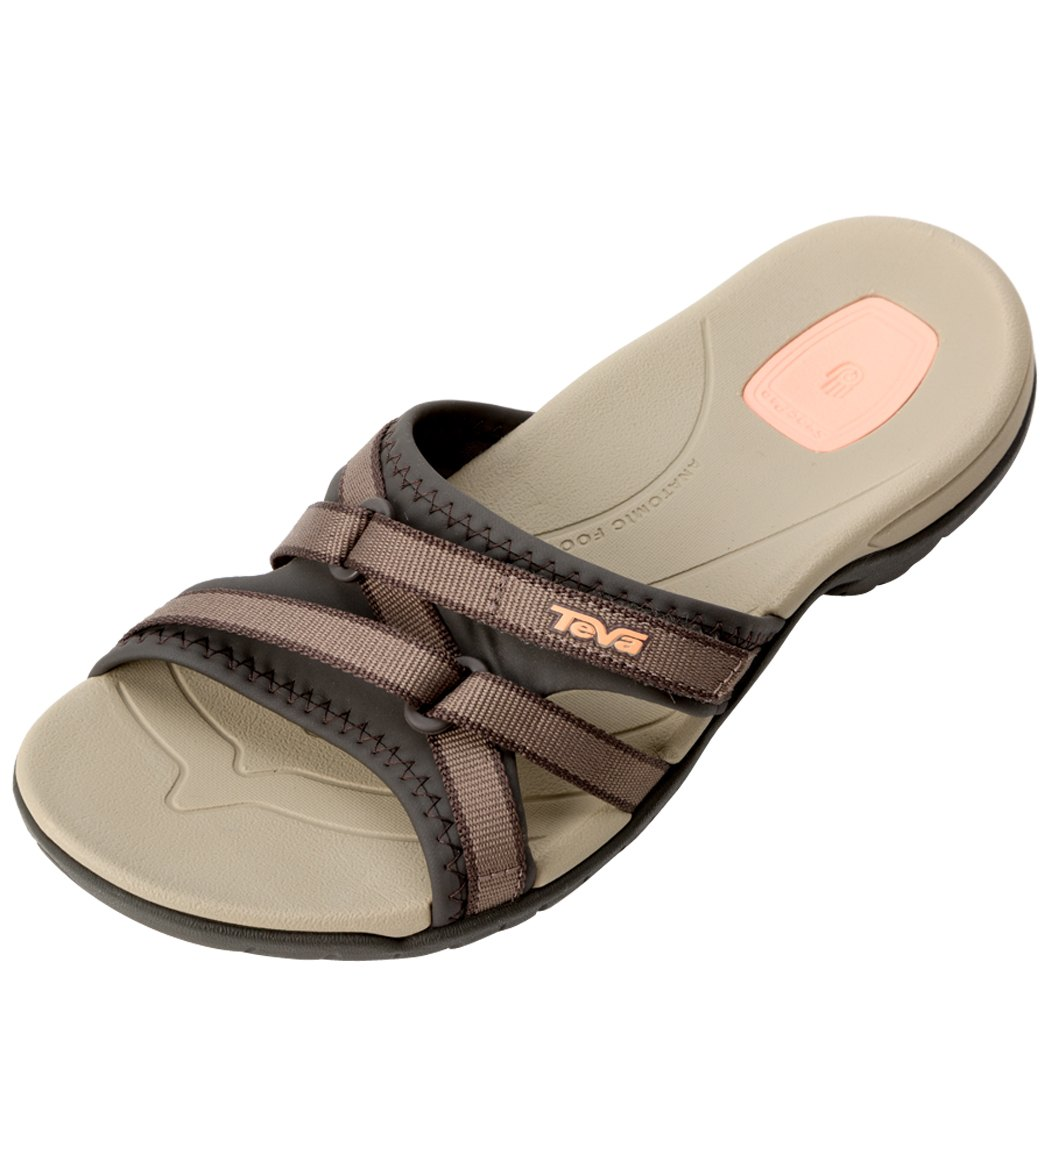 98eef7c59960 Teva Women s Tirra Slide Sandal at SwimOutlet.com - Free Shipping